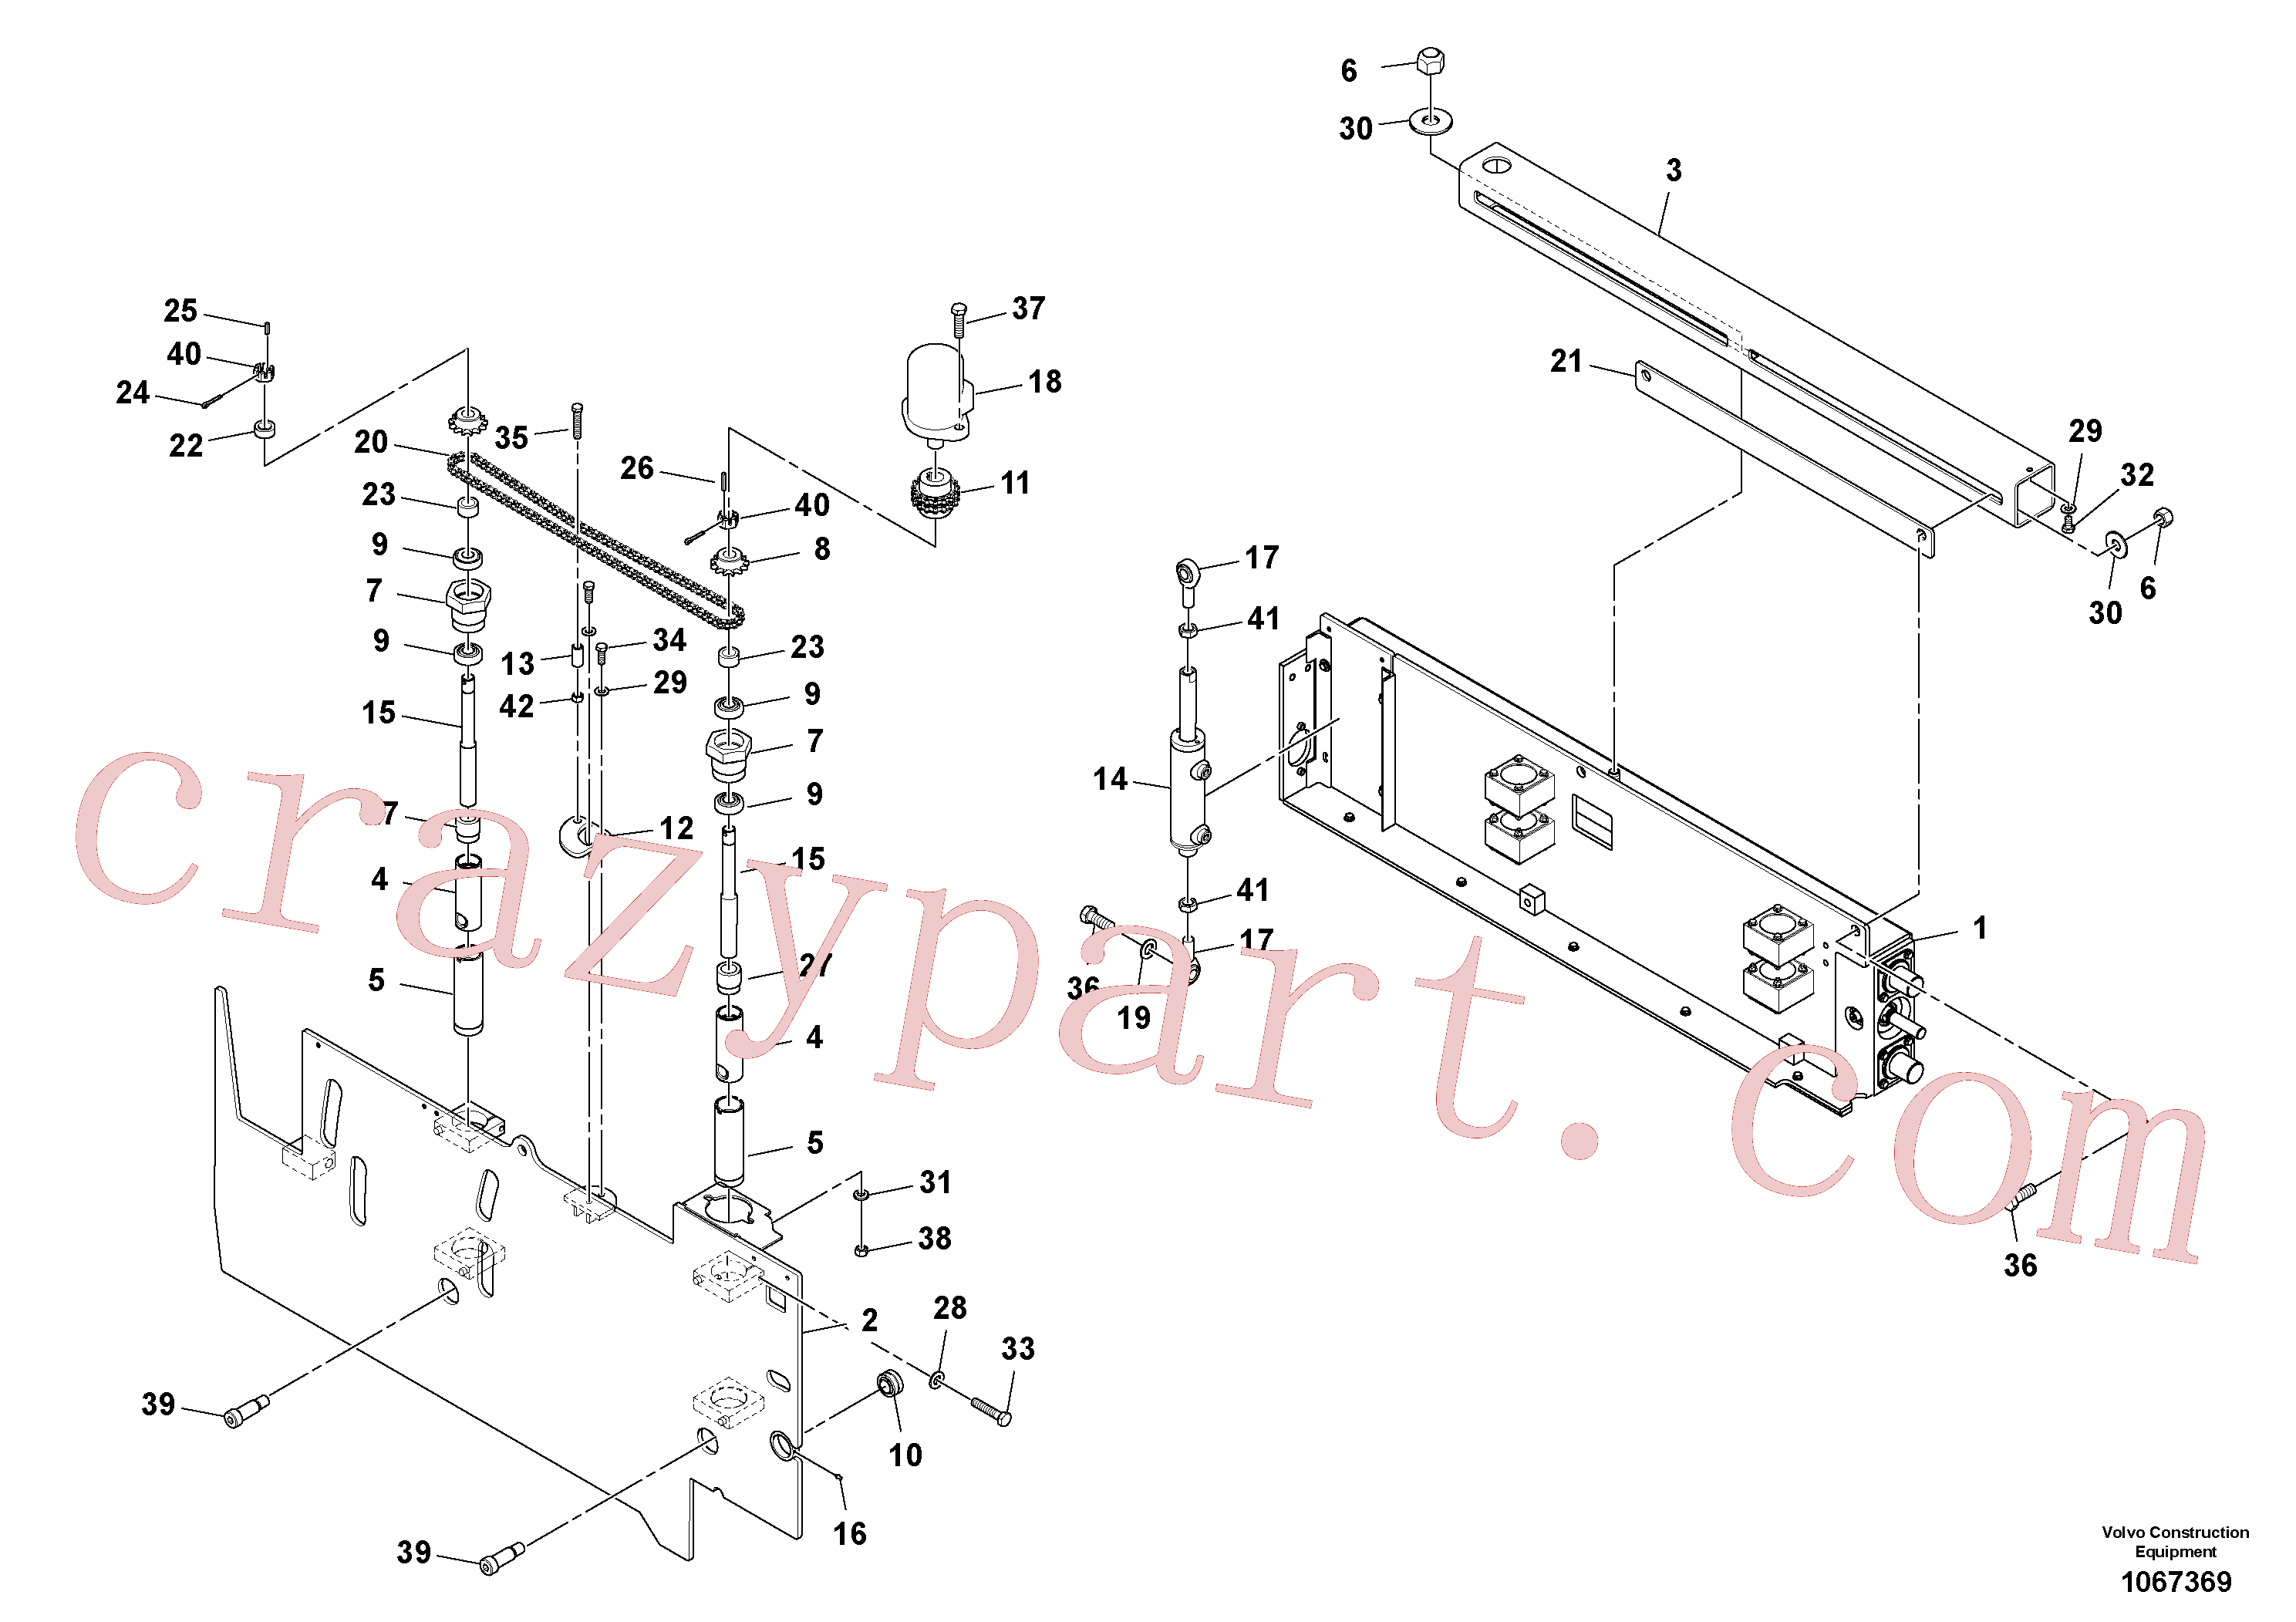 RM95935235 for Volvo Extension Assembly(1067369 assembly)